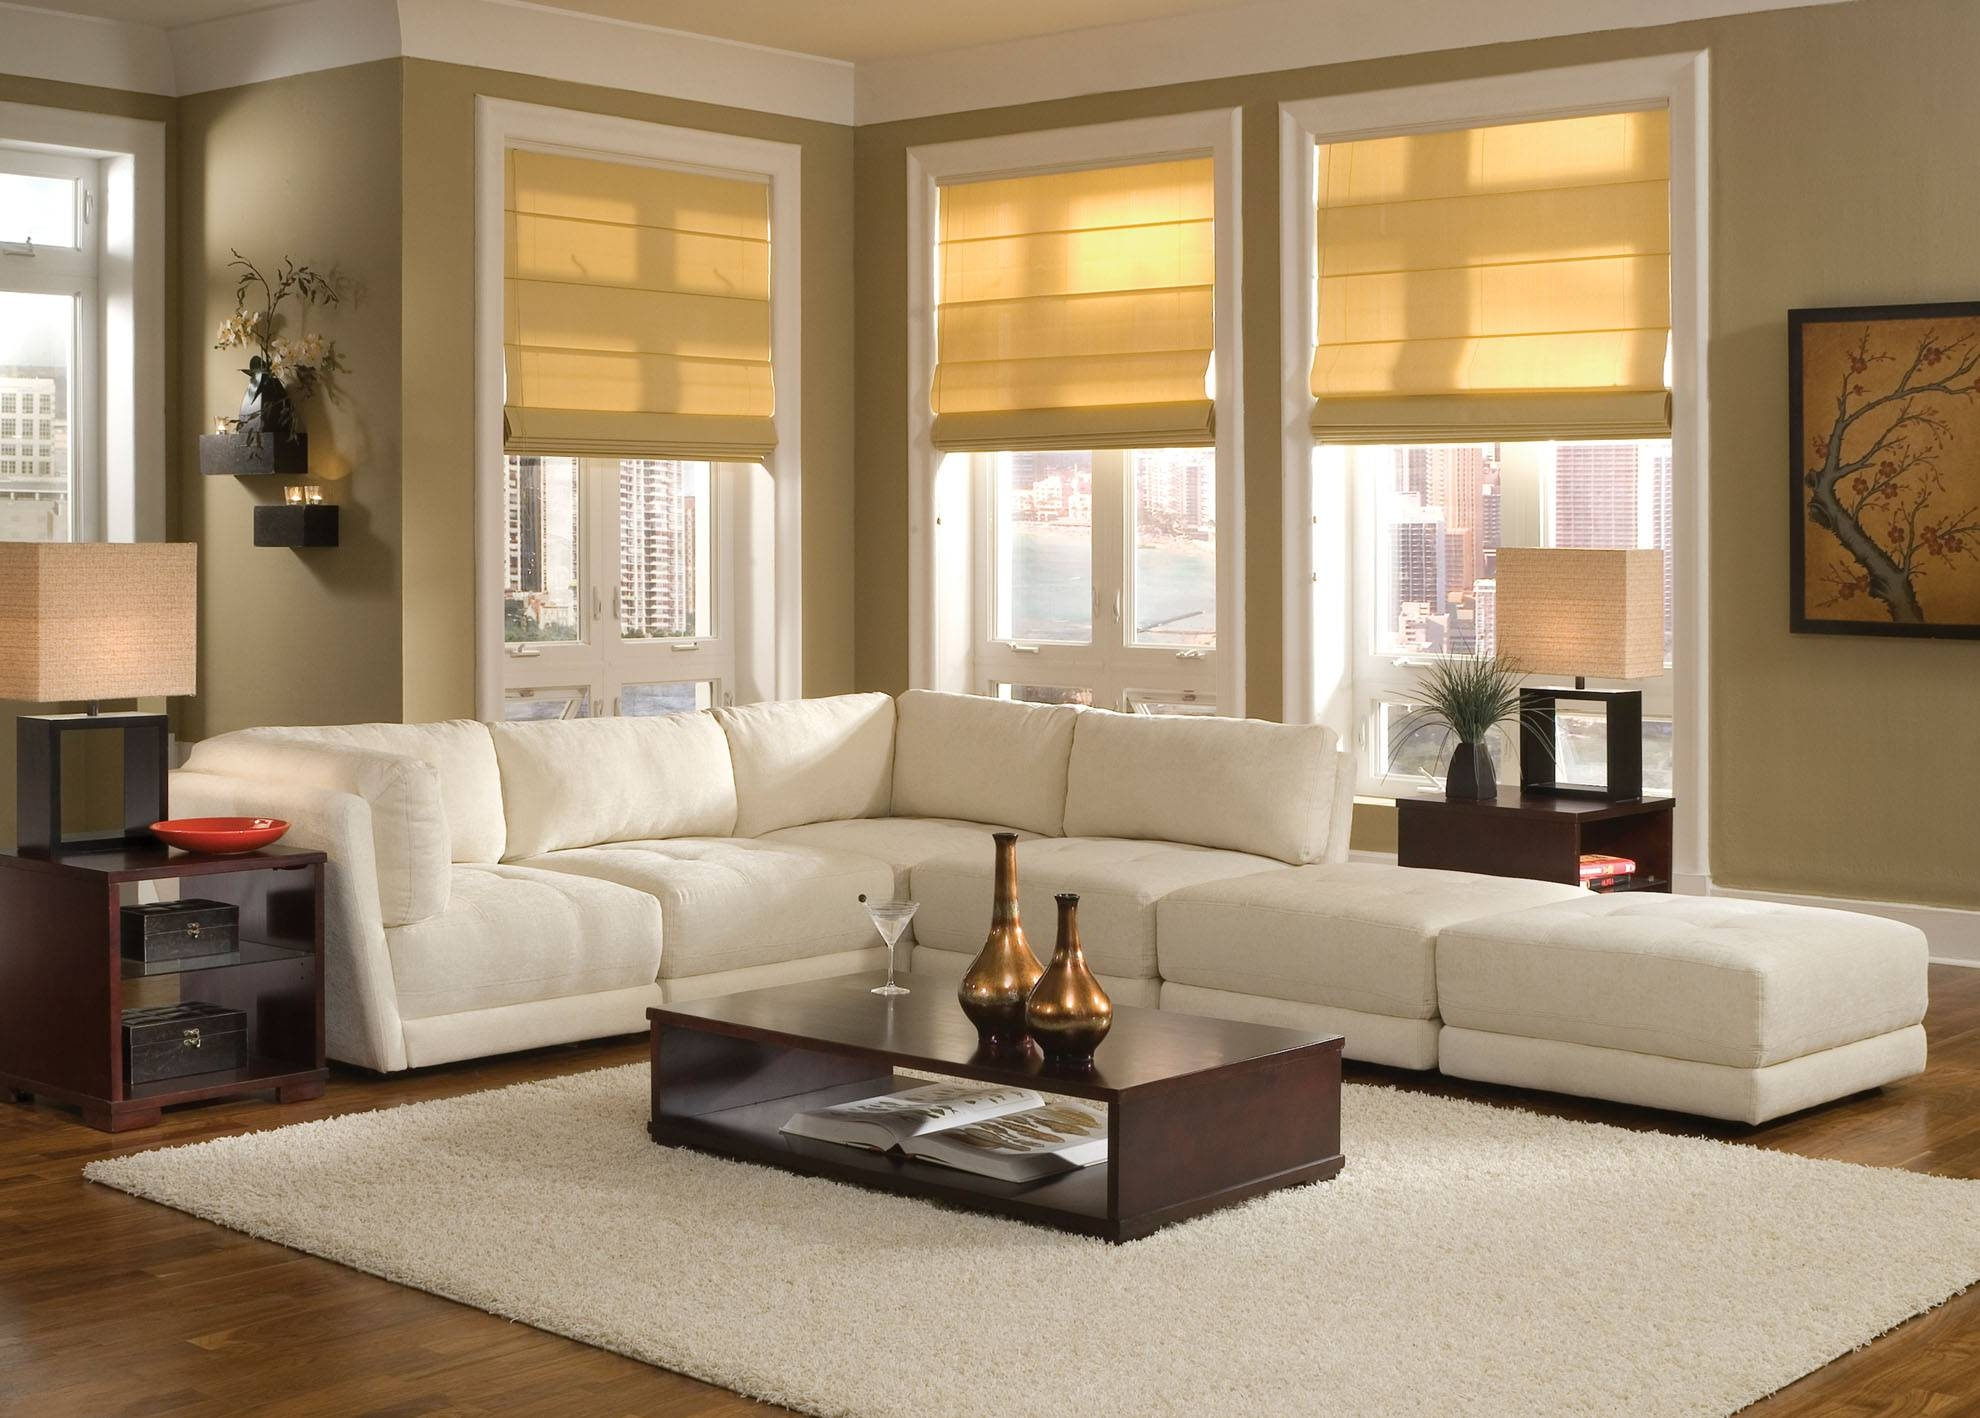 White Sofa Design Ideas U0026amp; Pictures For Living Room Within Decorating  With A Sectional Sofa Part 42